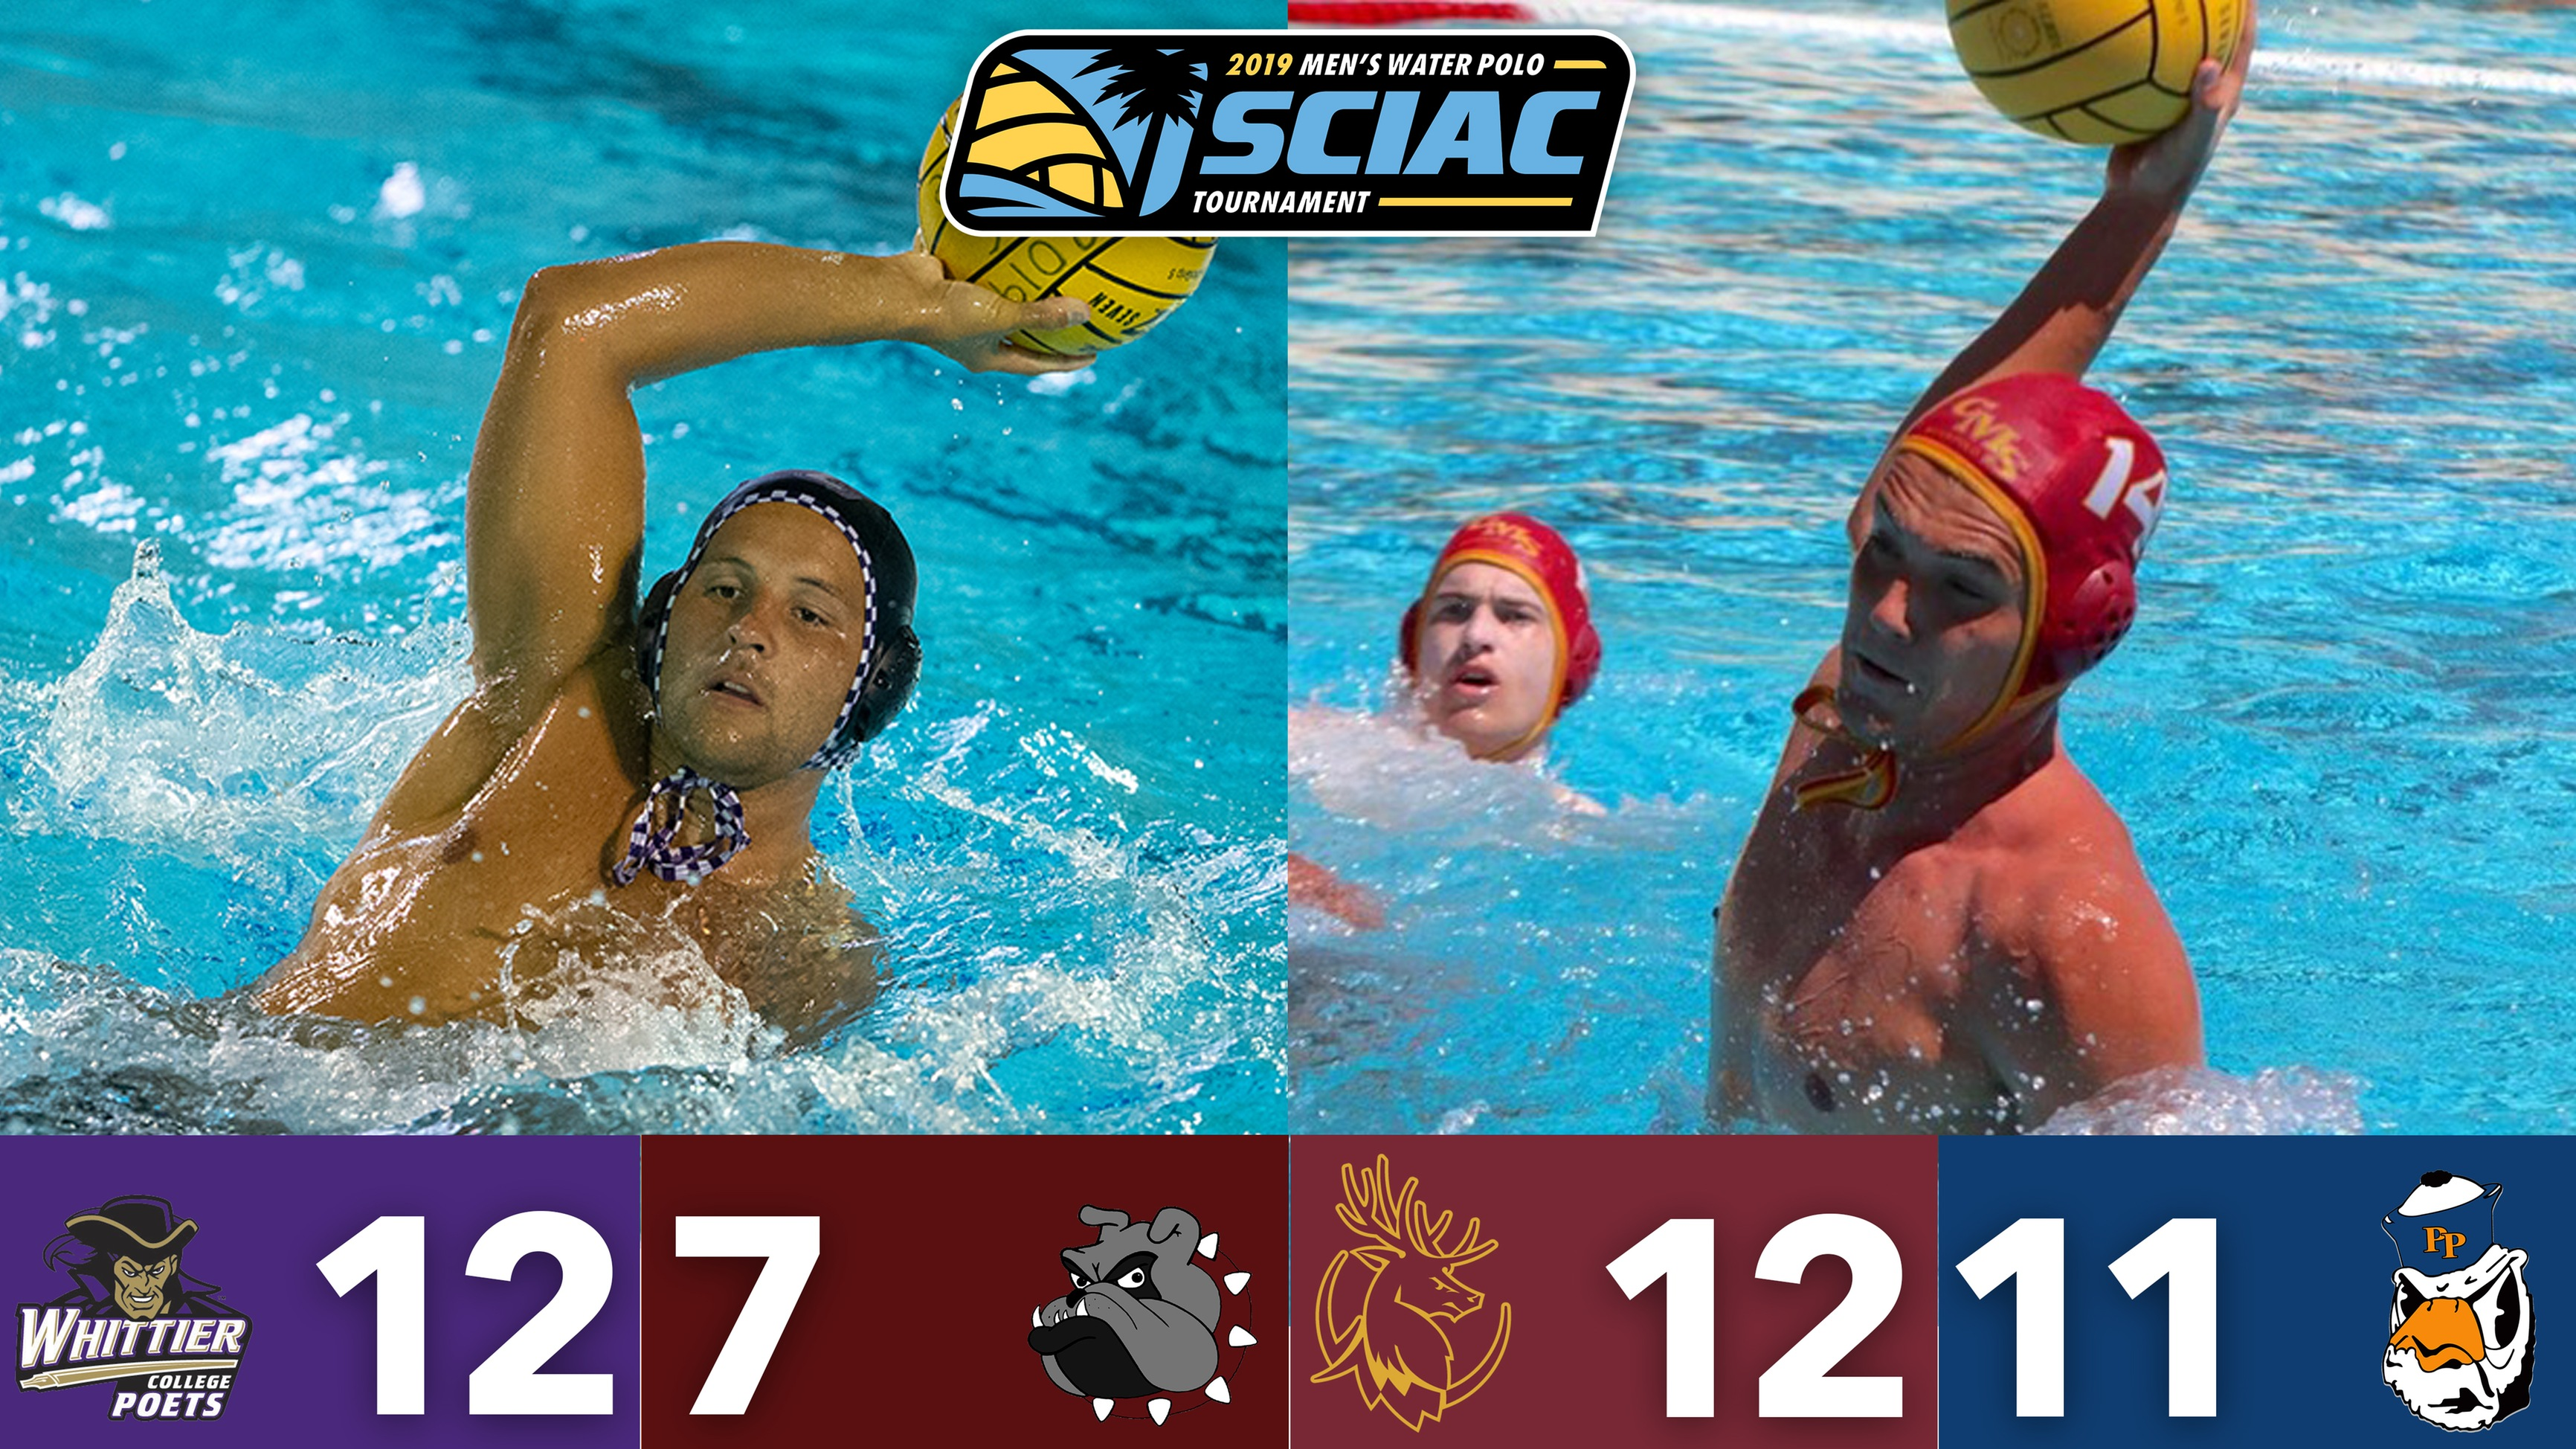 Whittier, CMS Advance to SCIAC Men's Water Polo Postseason Tournament Final